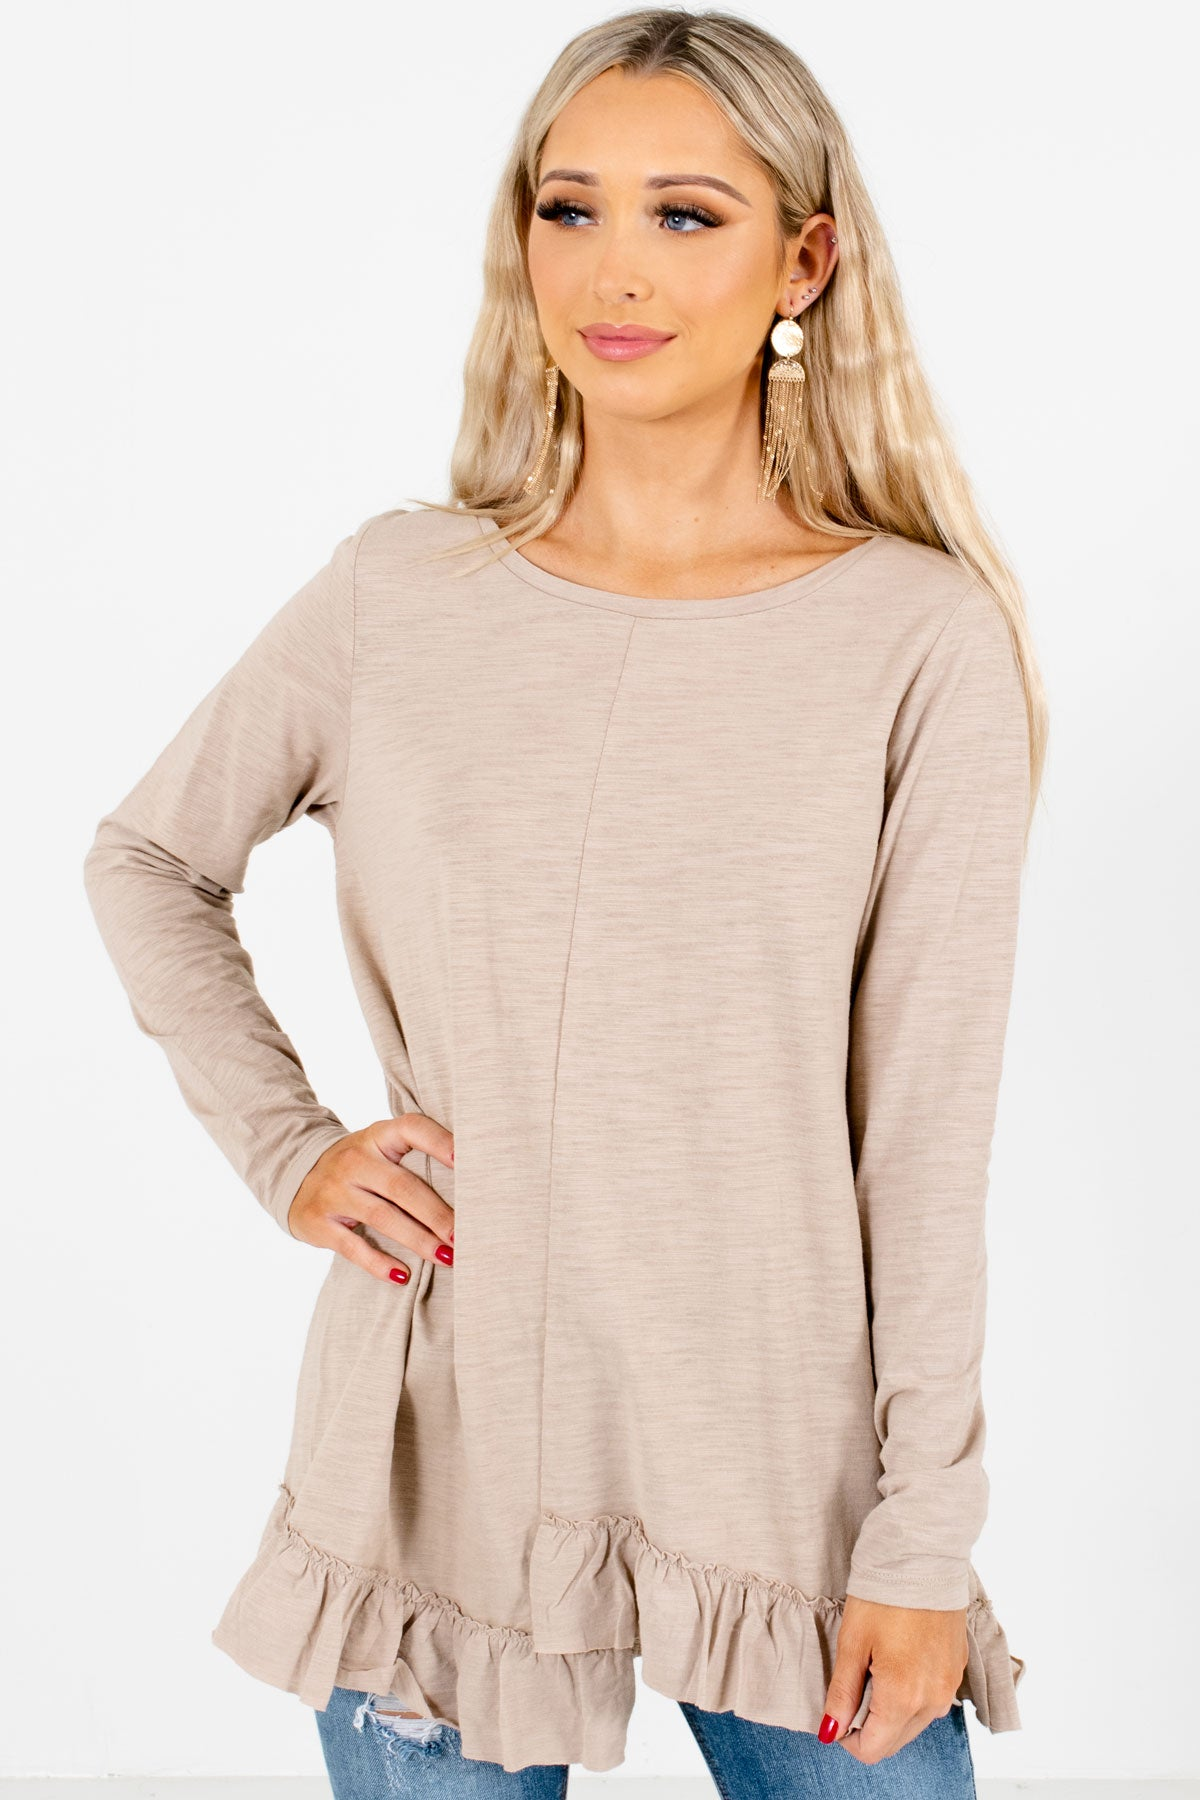 Tan Brown Cute and Comfortable Boutique Tops for Women